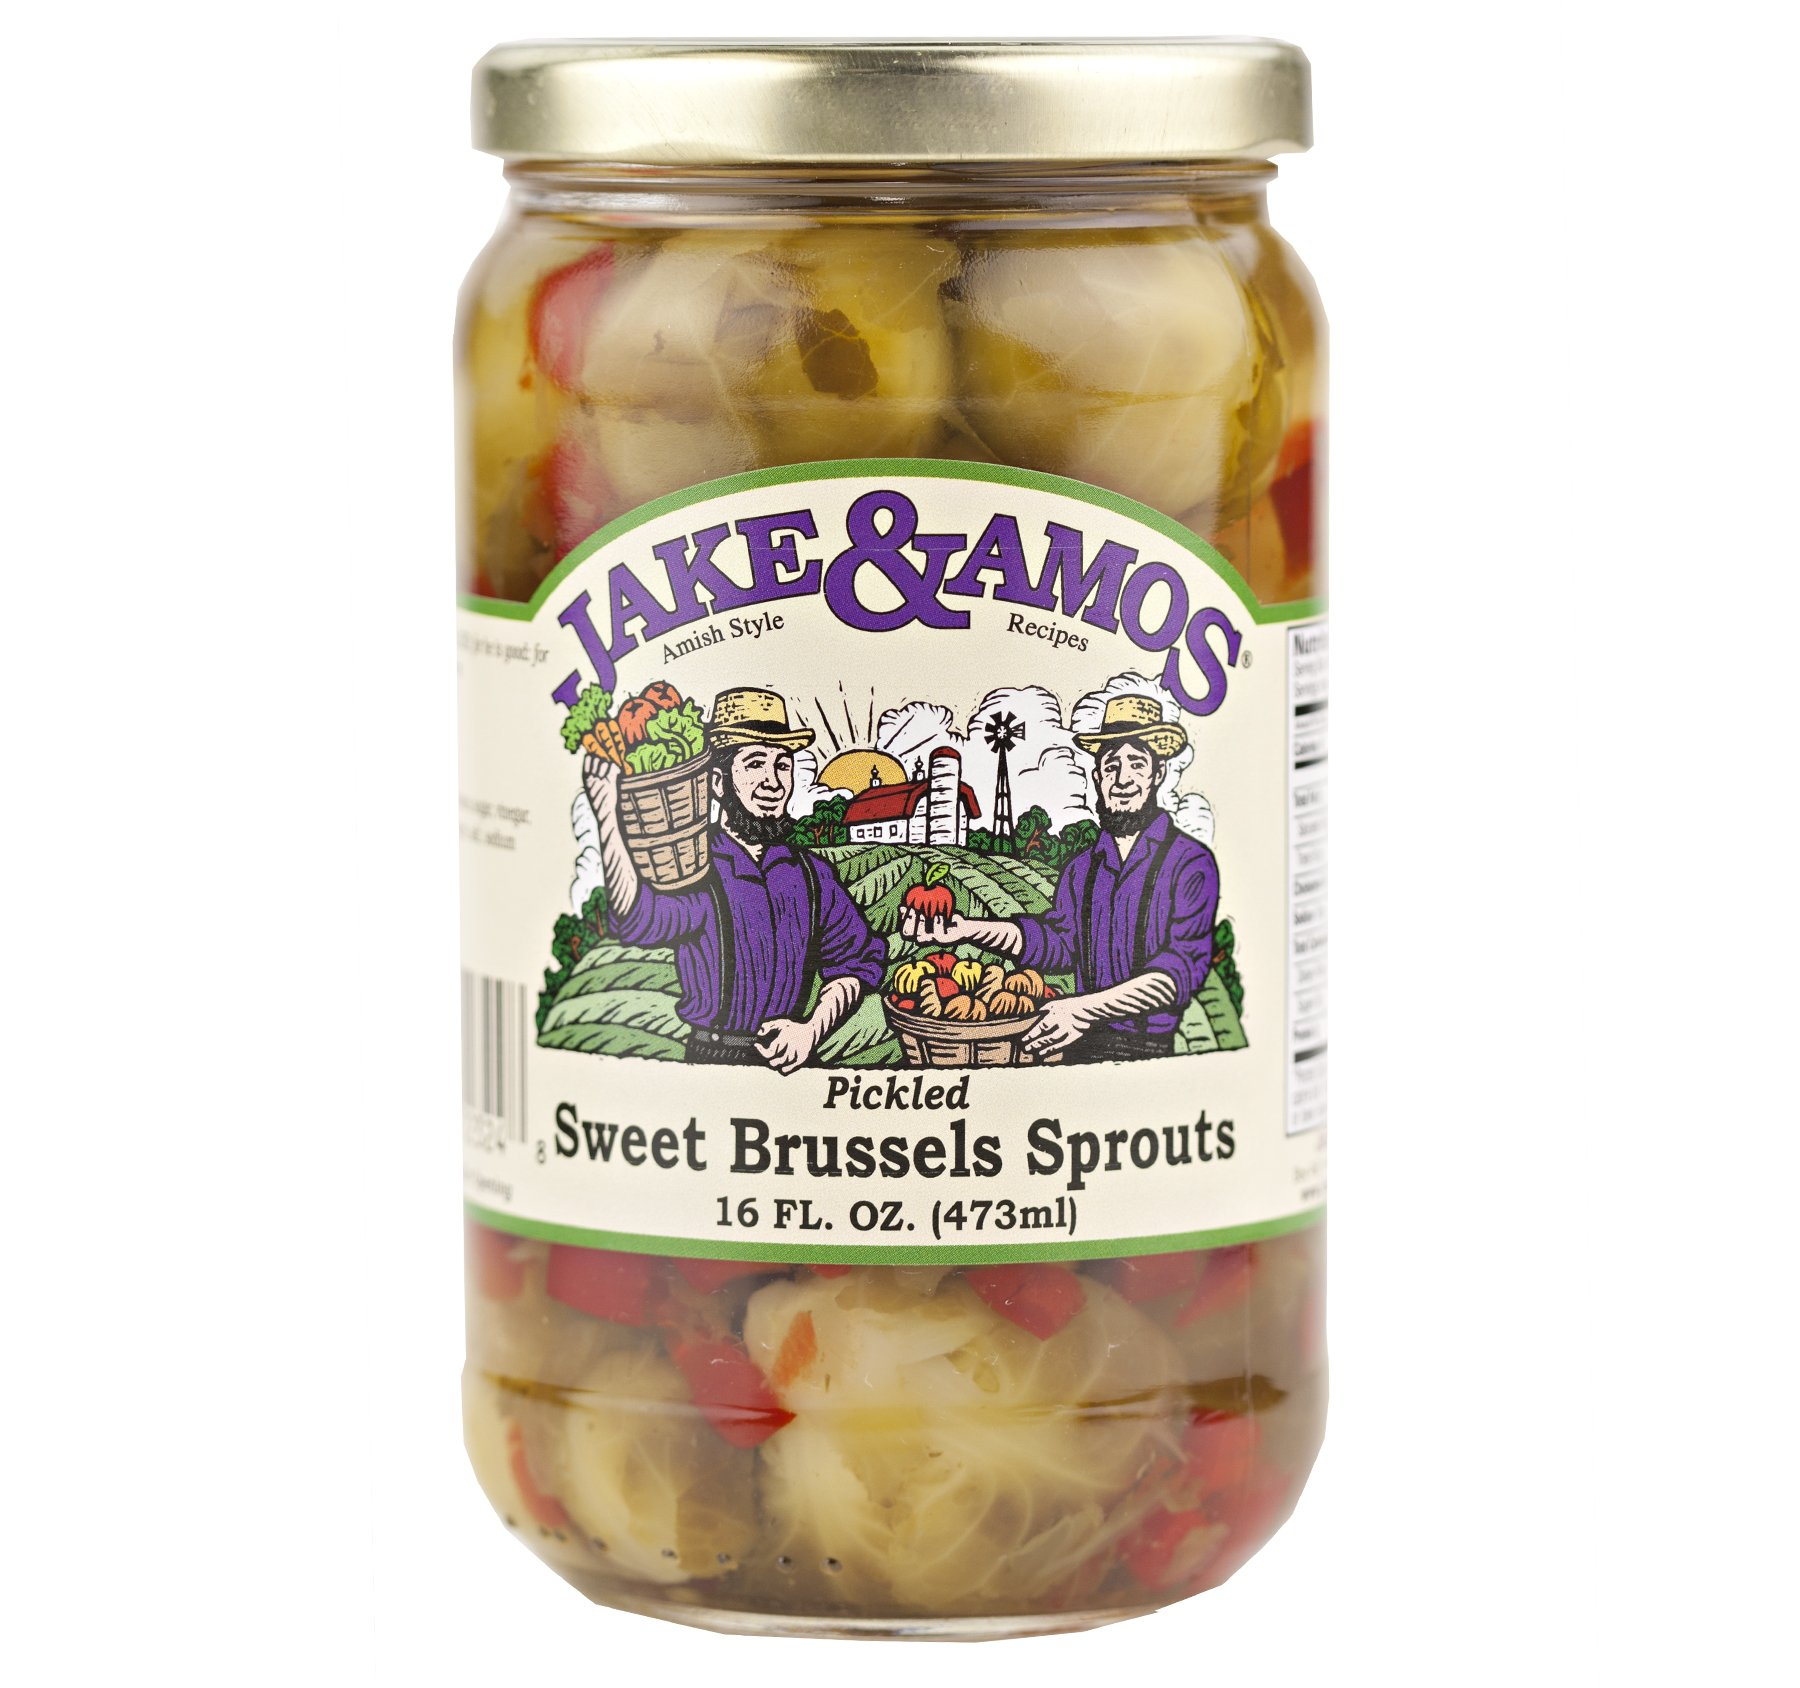 Jake & Amos Pickled Sweet Brussels Sprouts 16 oz. (3 Jars)